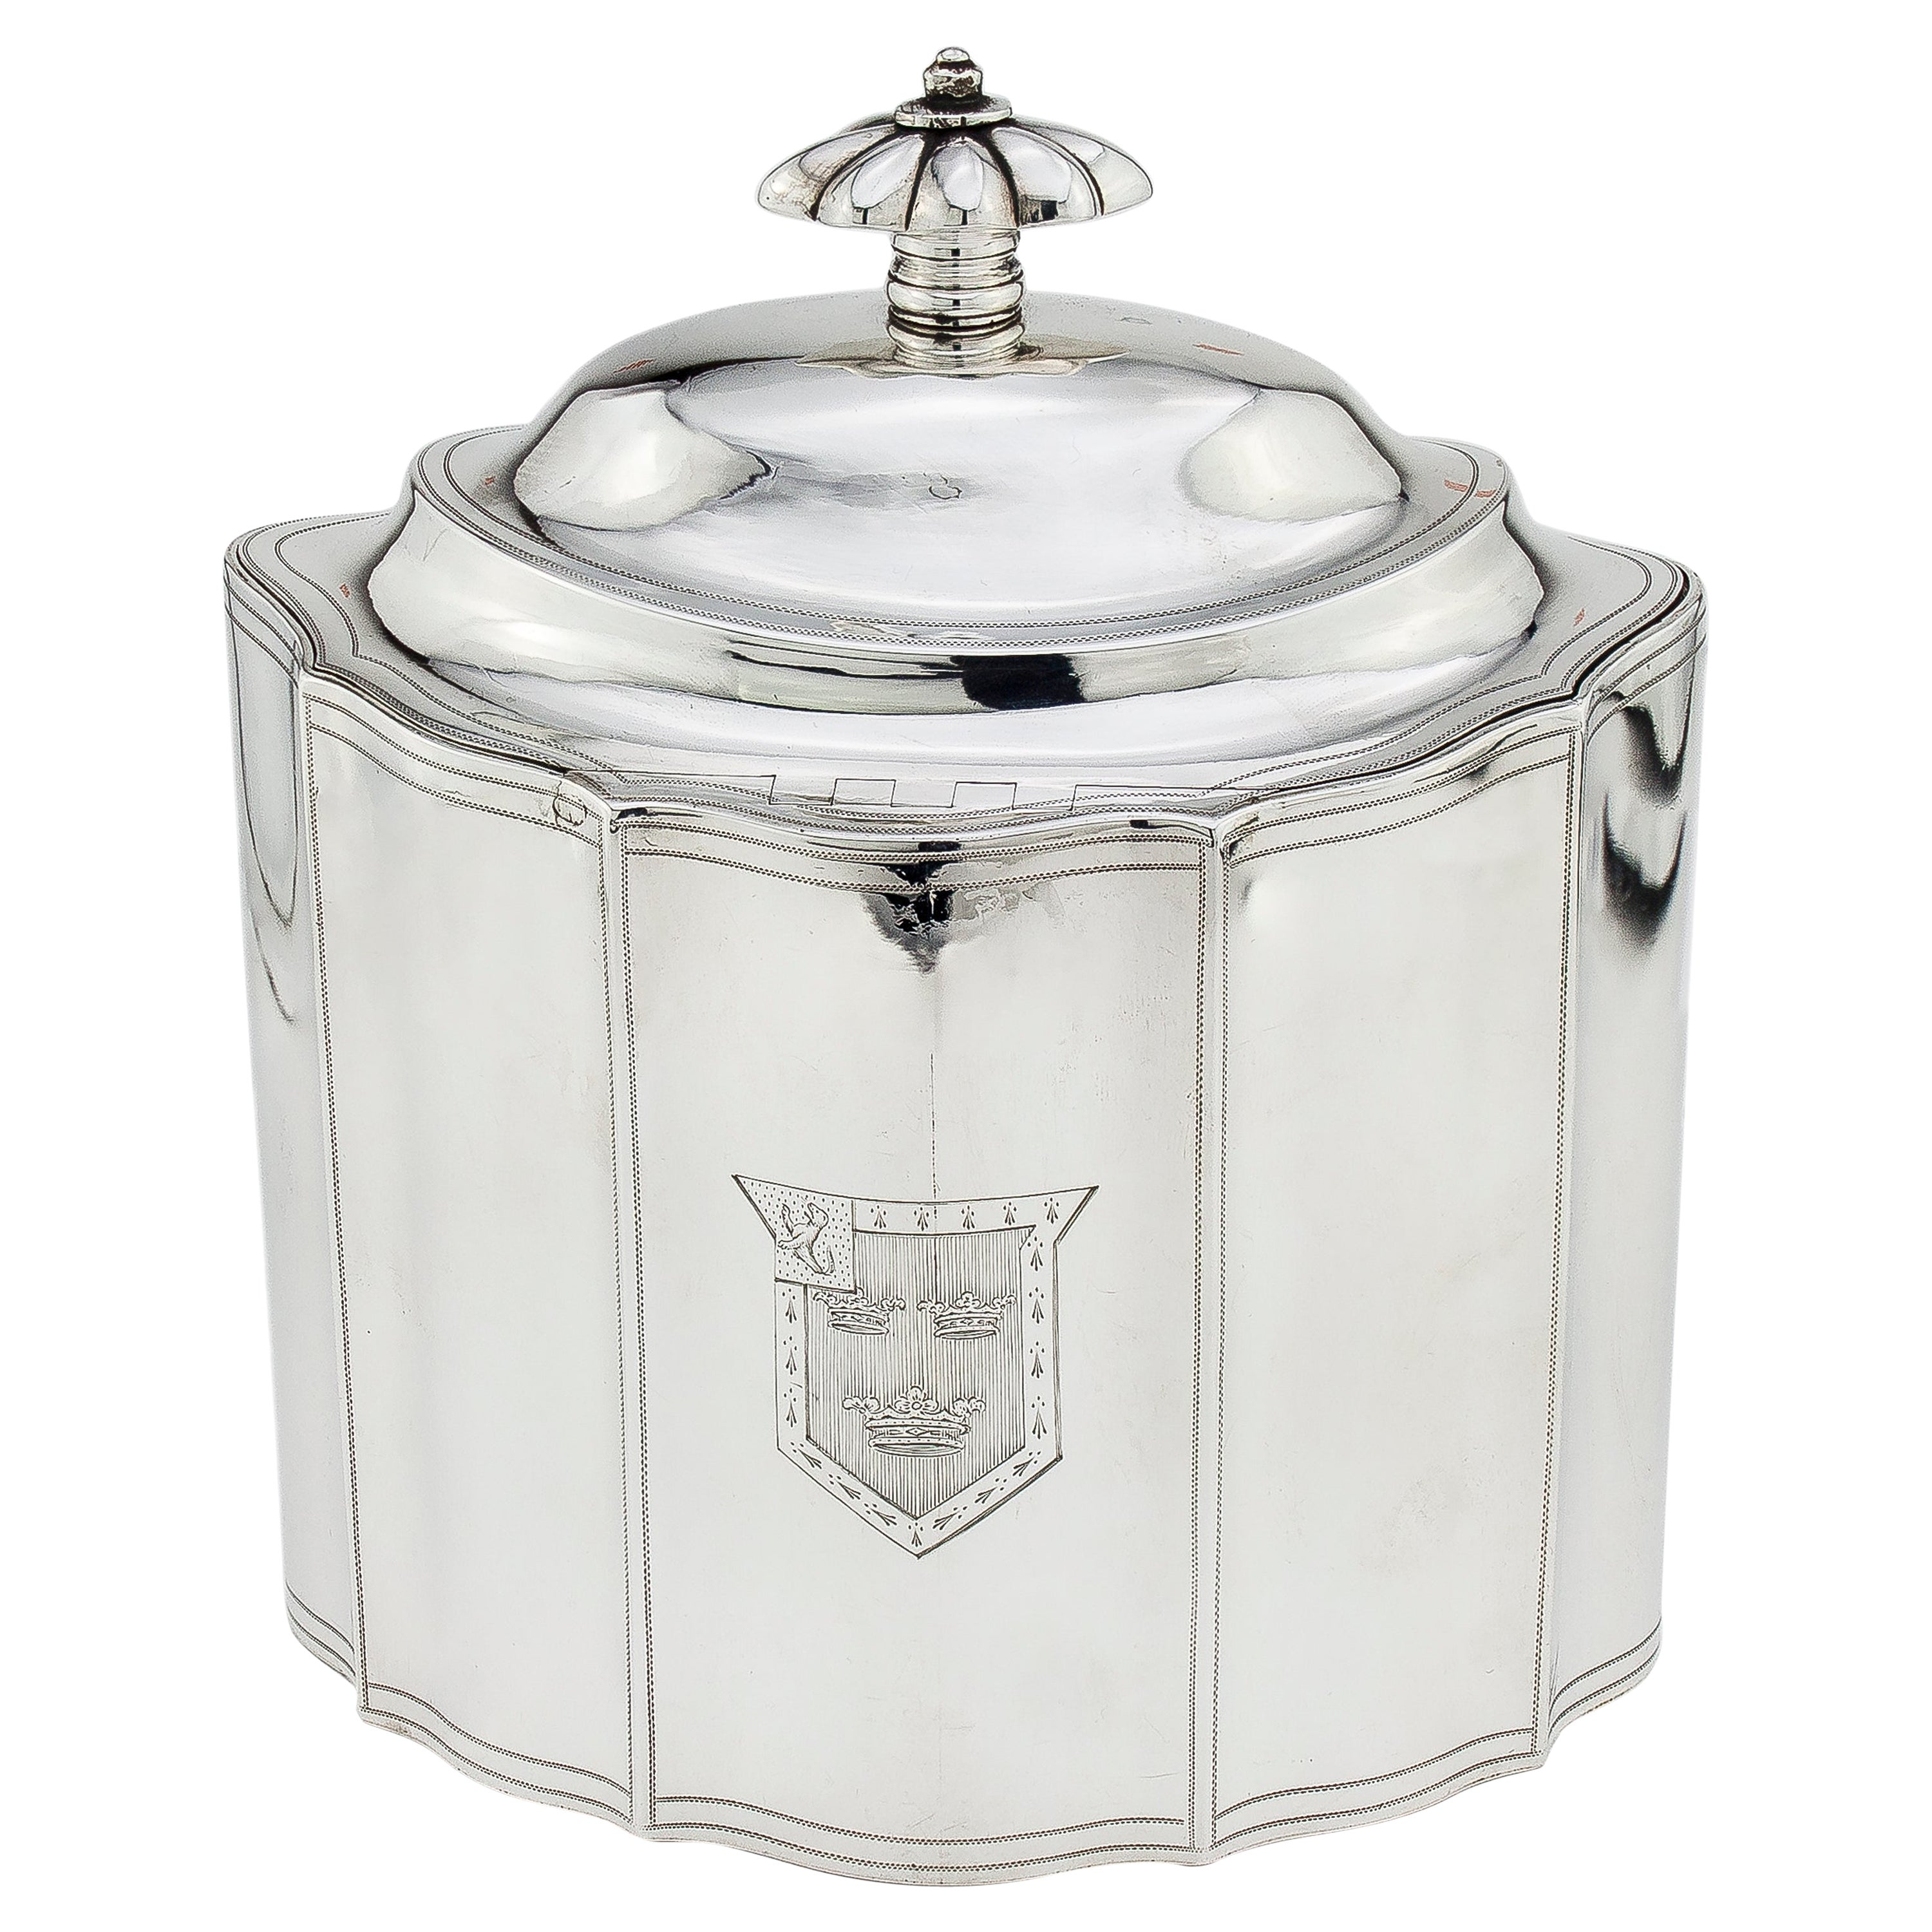 Antique Georgian Sterling Silver Tea Caddy with Coat of Arms, London, 1796